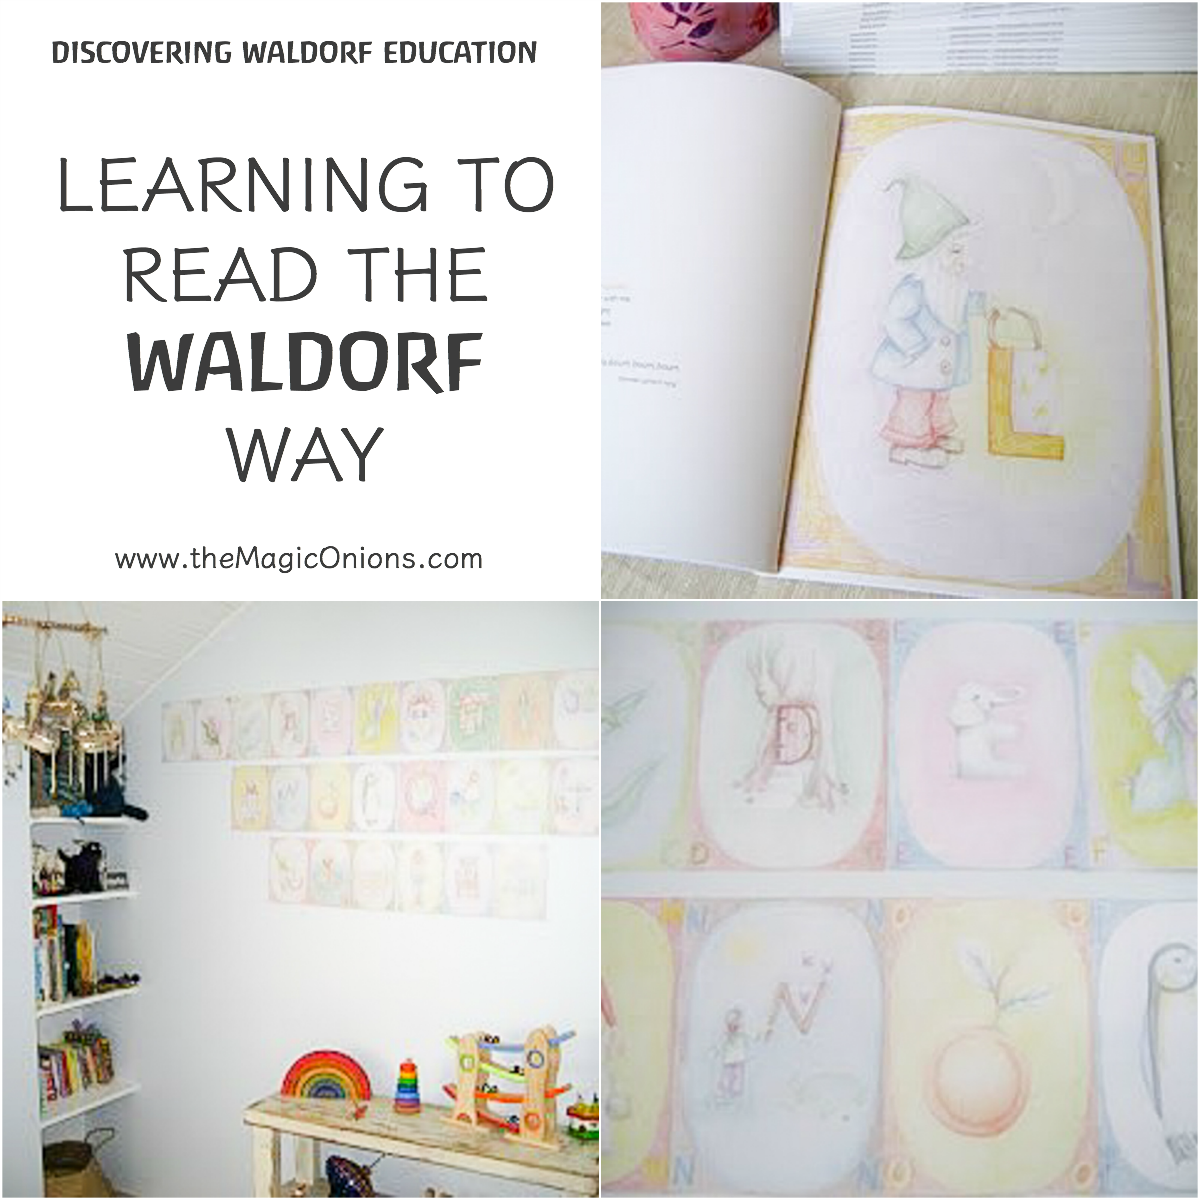 Discovering Waldorf – Learning To Read The Waldorf Way